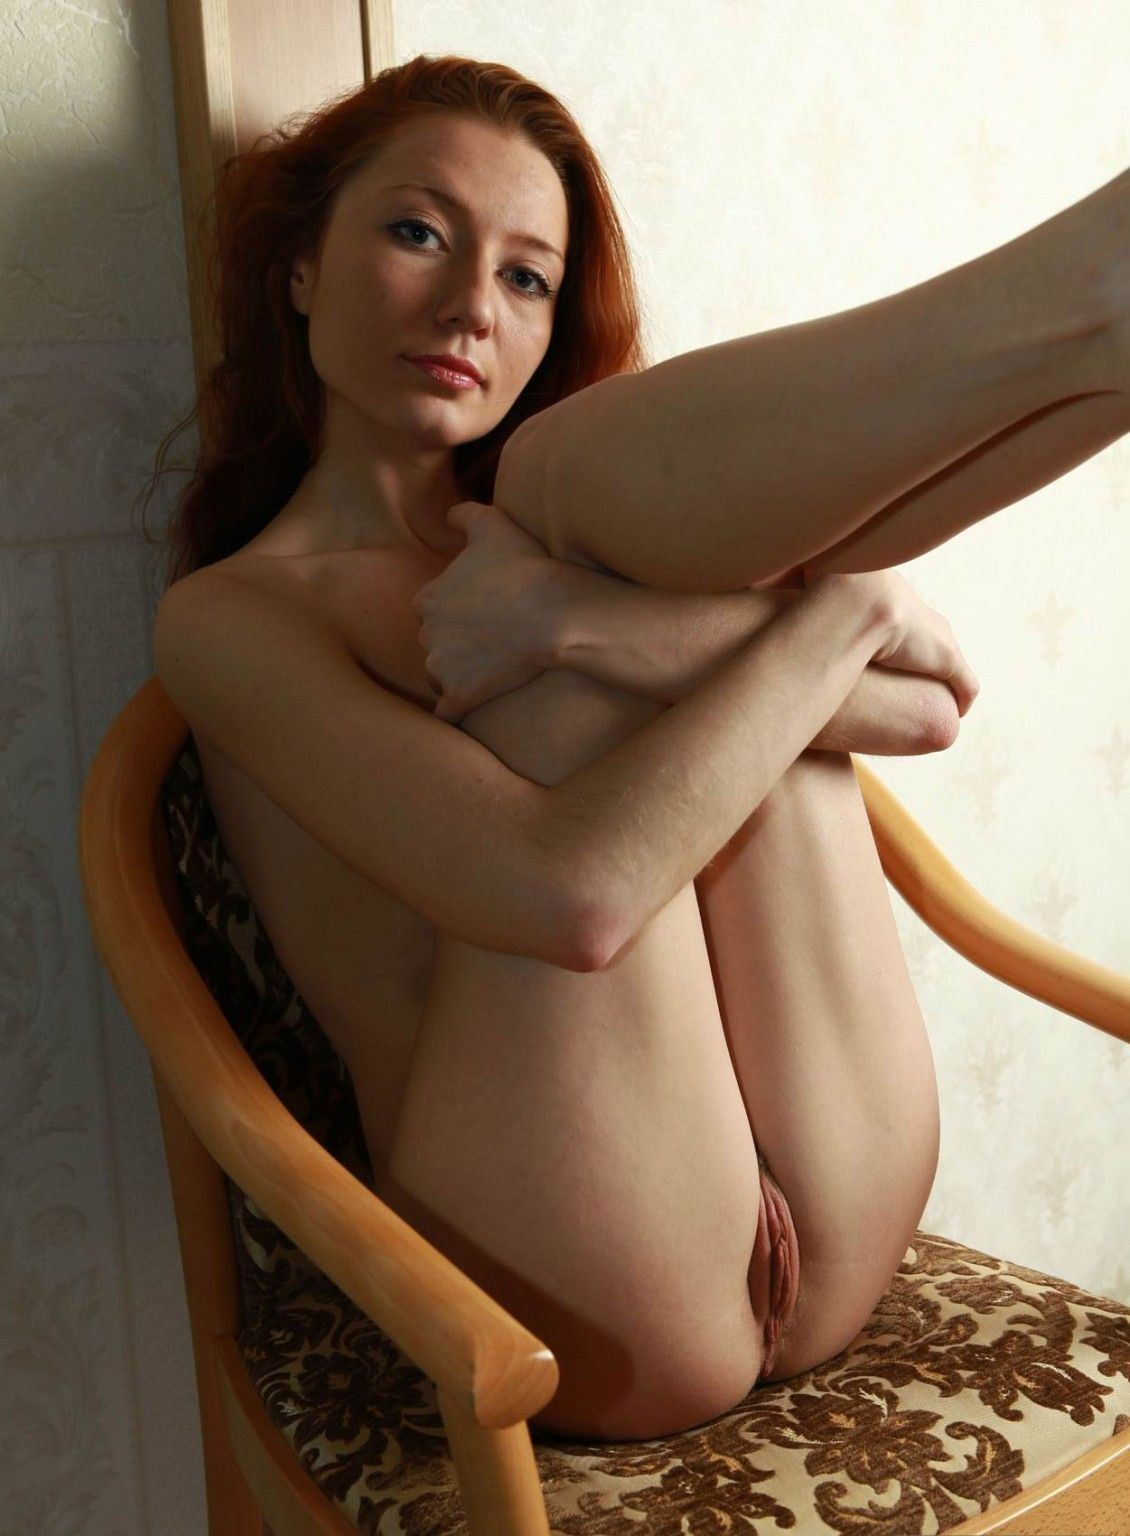 Naked skinny redhead nude